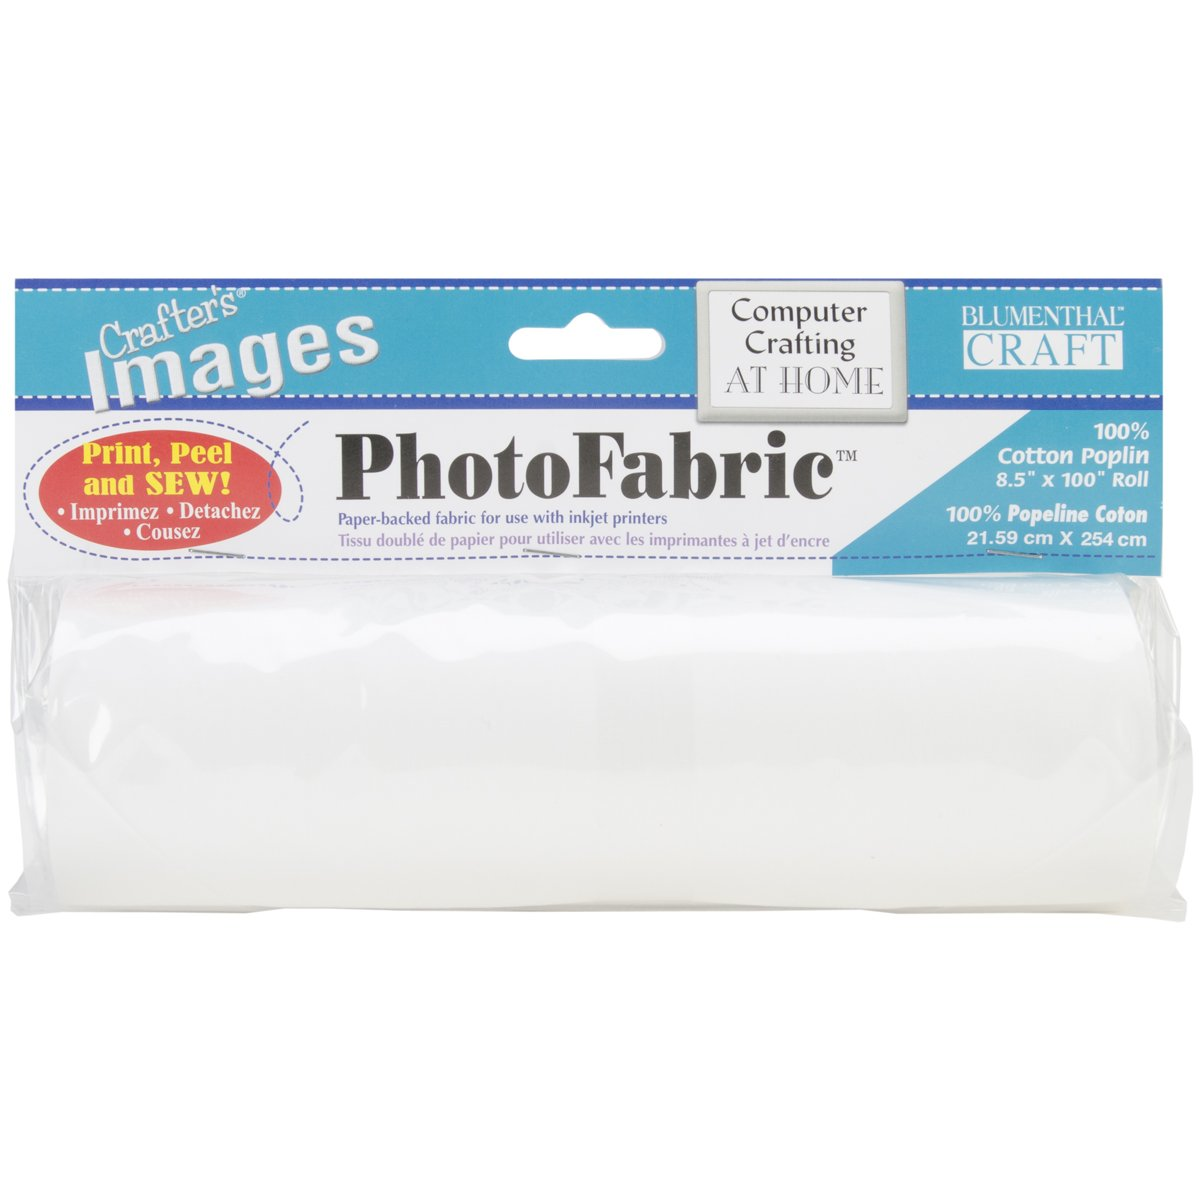 Blumenthal Lansing Crafter's Images 100-Percent Cotton Poplin, 8-1/2-Inch 100-Inch Roll Photo Fabric 10601022